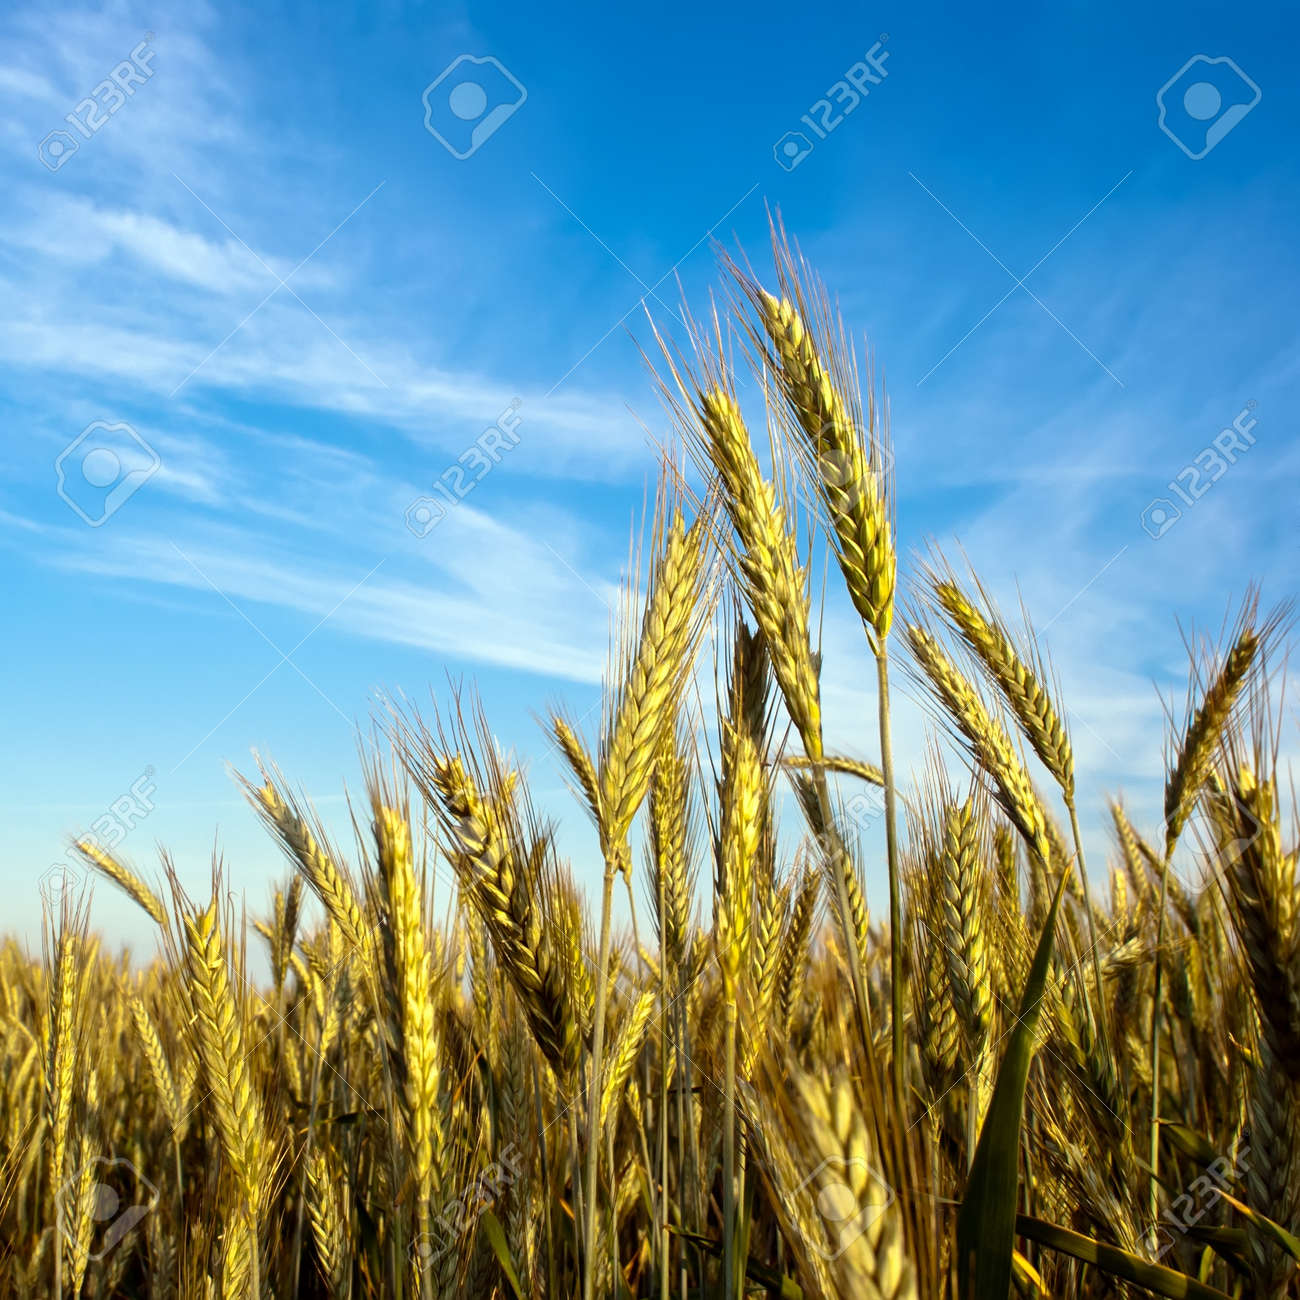 a grain-field in front of blue sky Stock Photo - 9864815